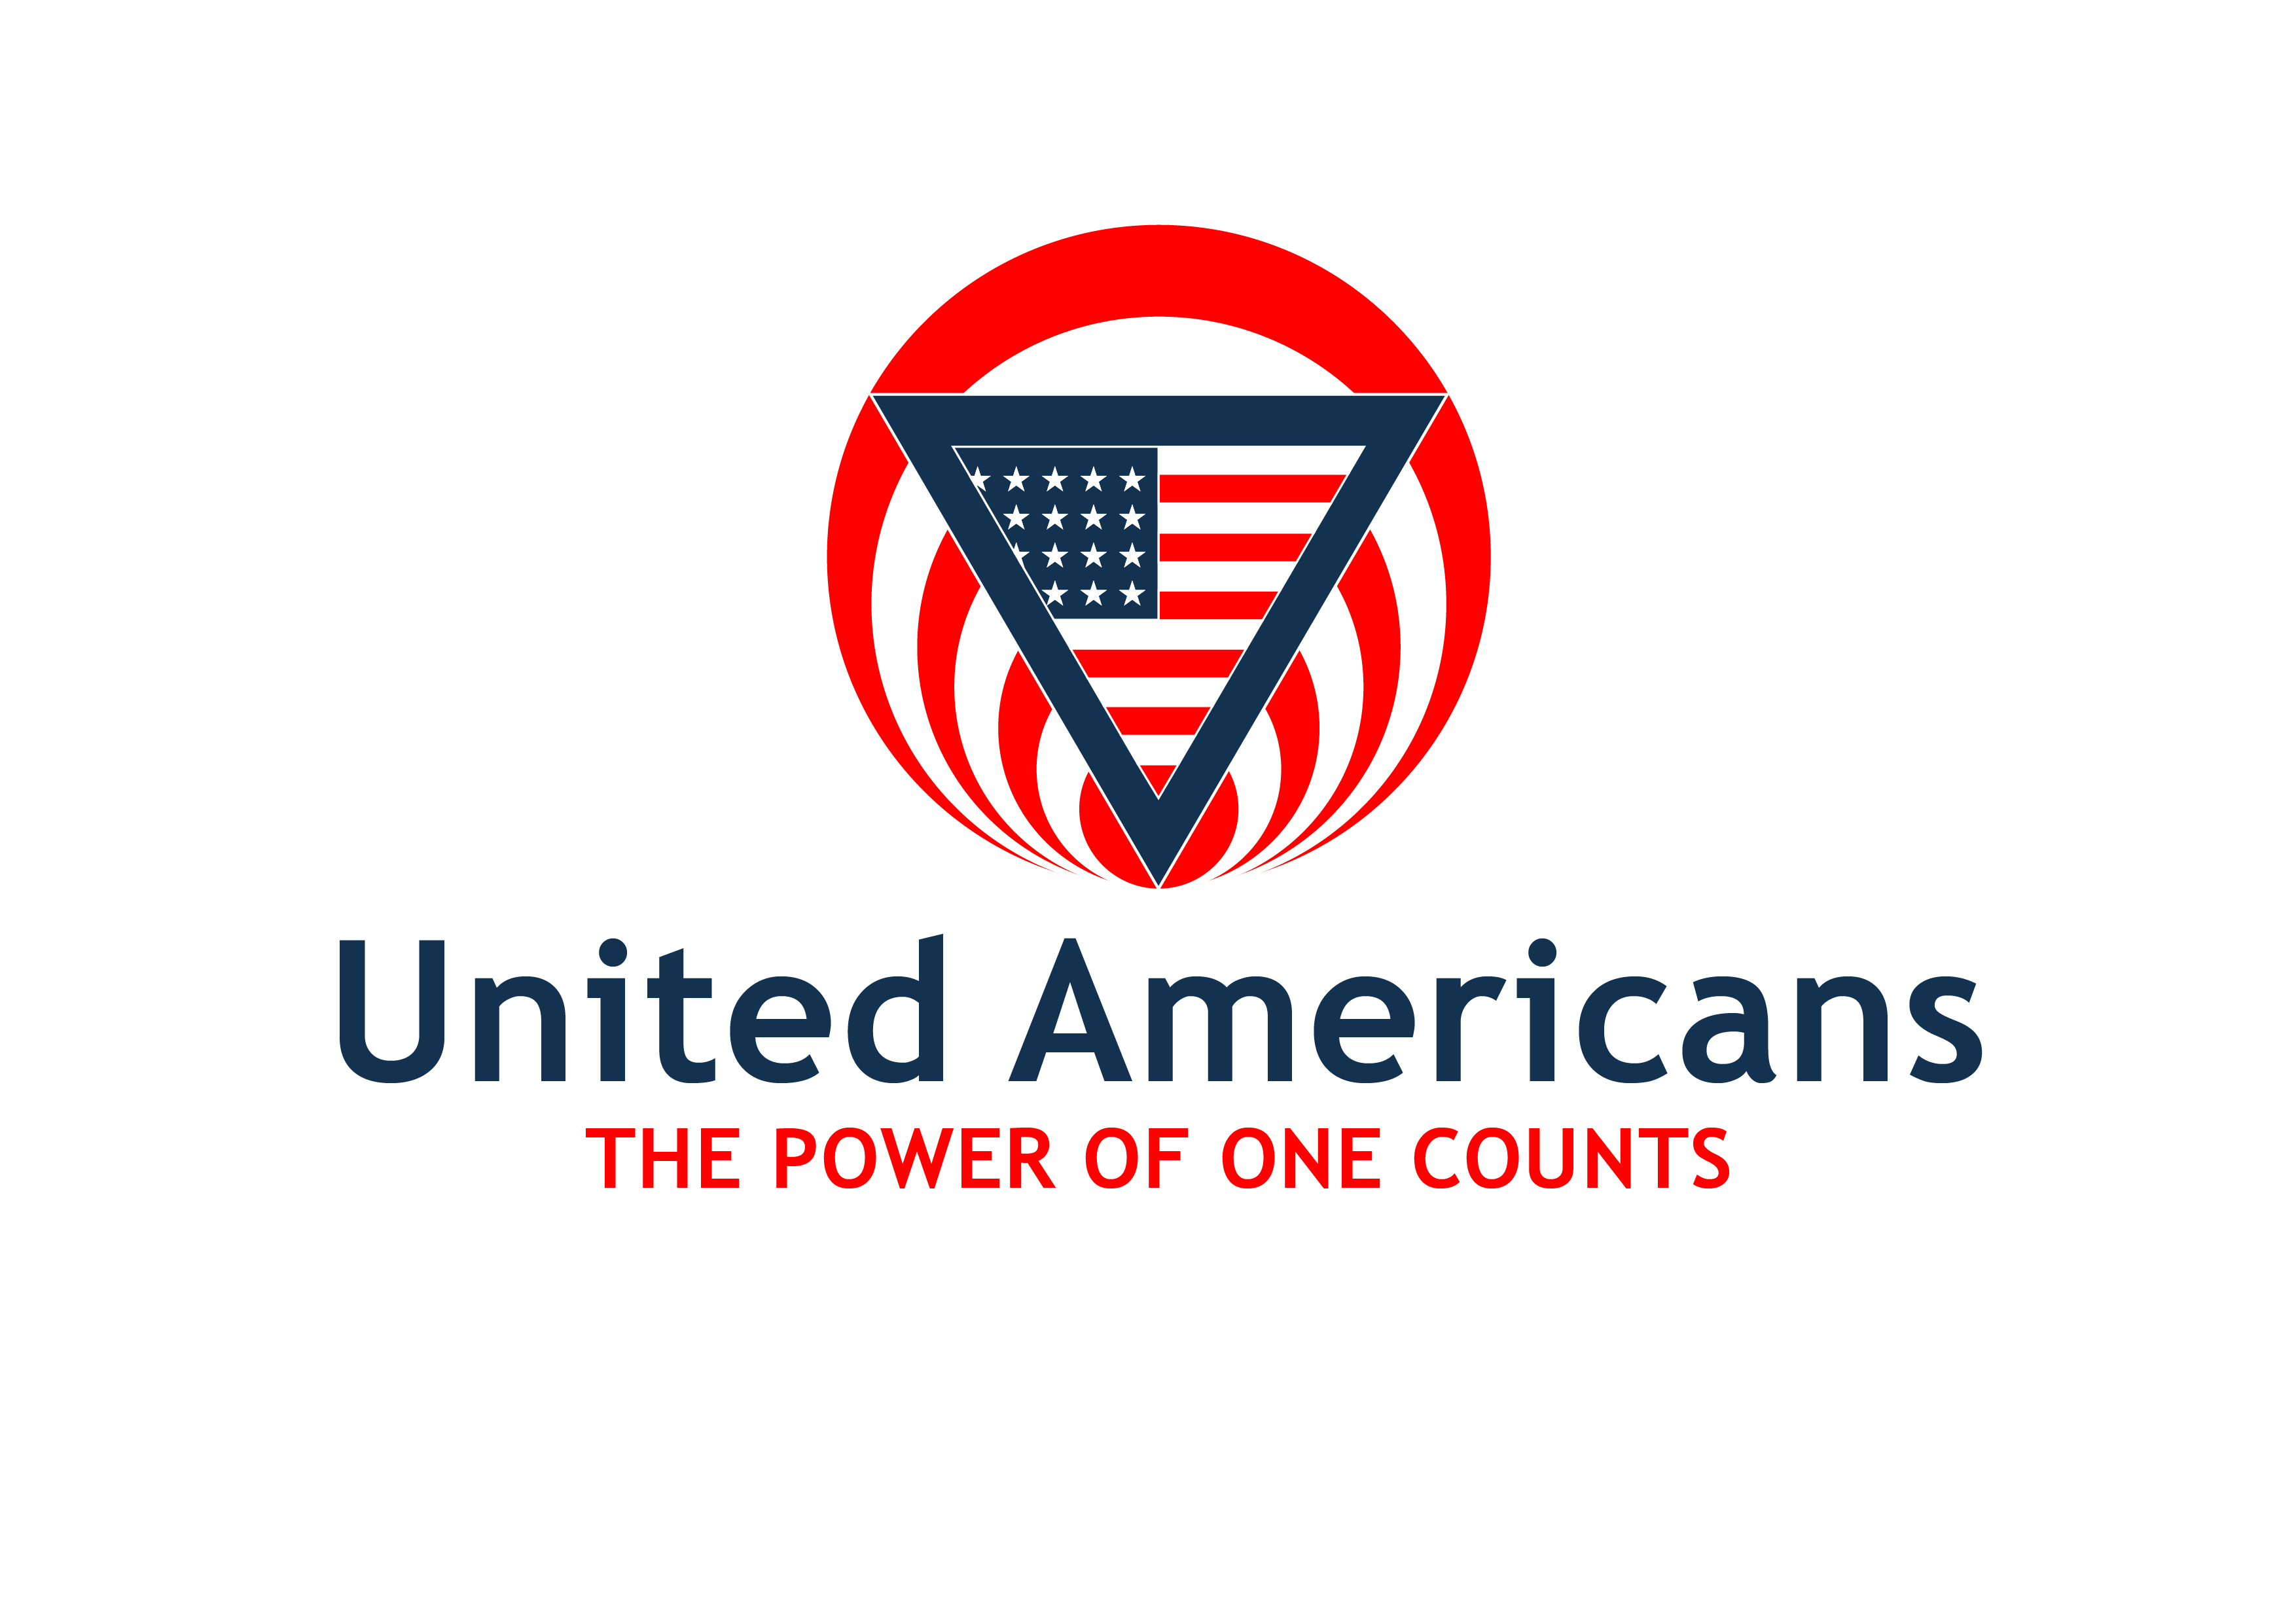 Logo Design by 3draw - Entry No. 55 in the Logo Design Contest Creative Logo Design for United Americans.